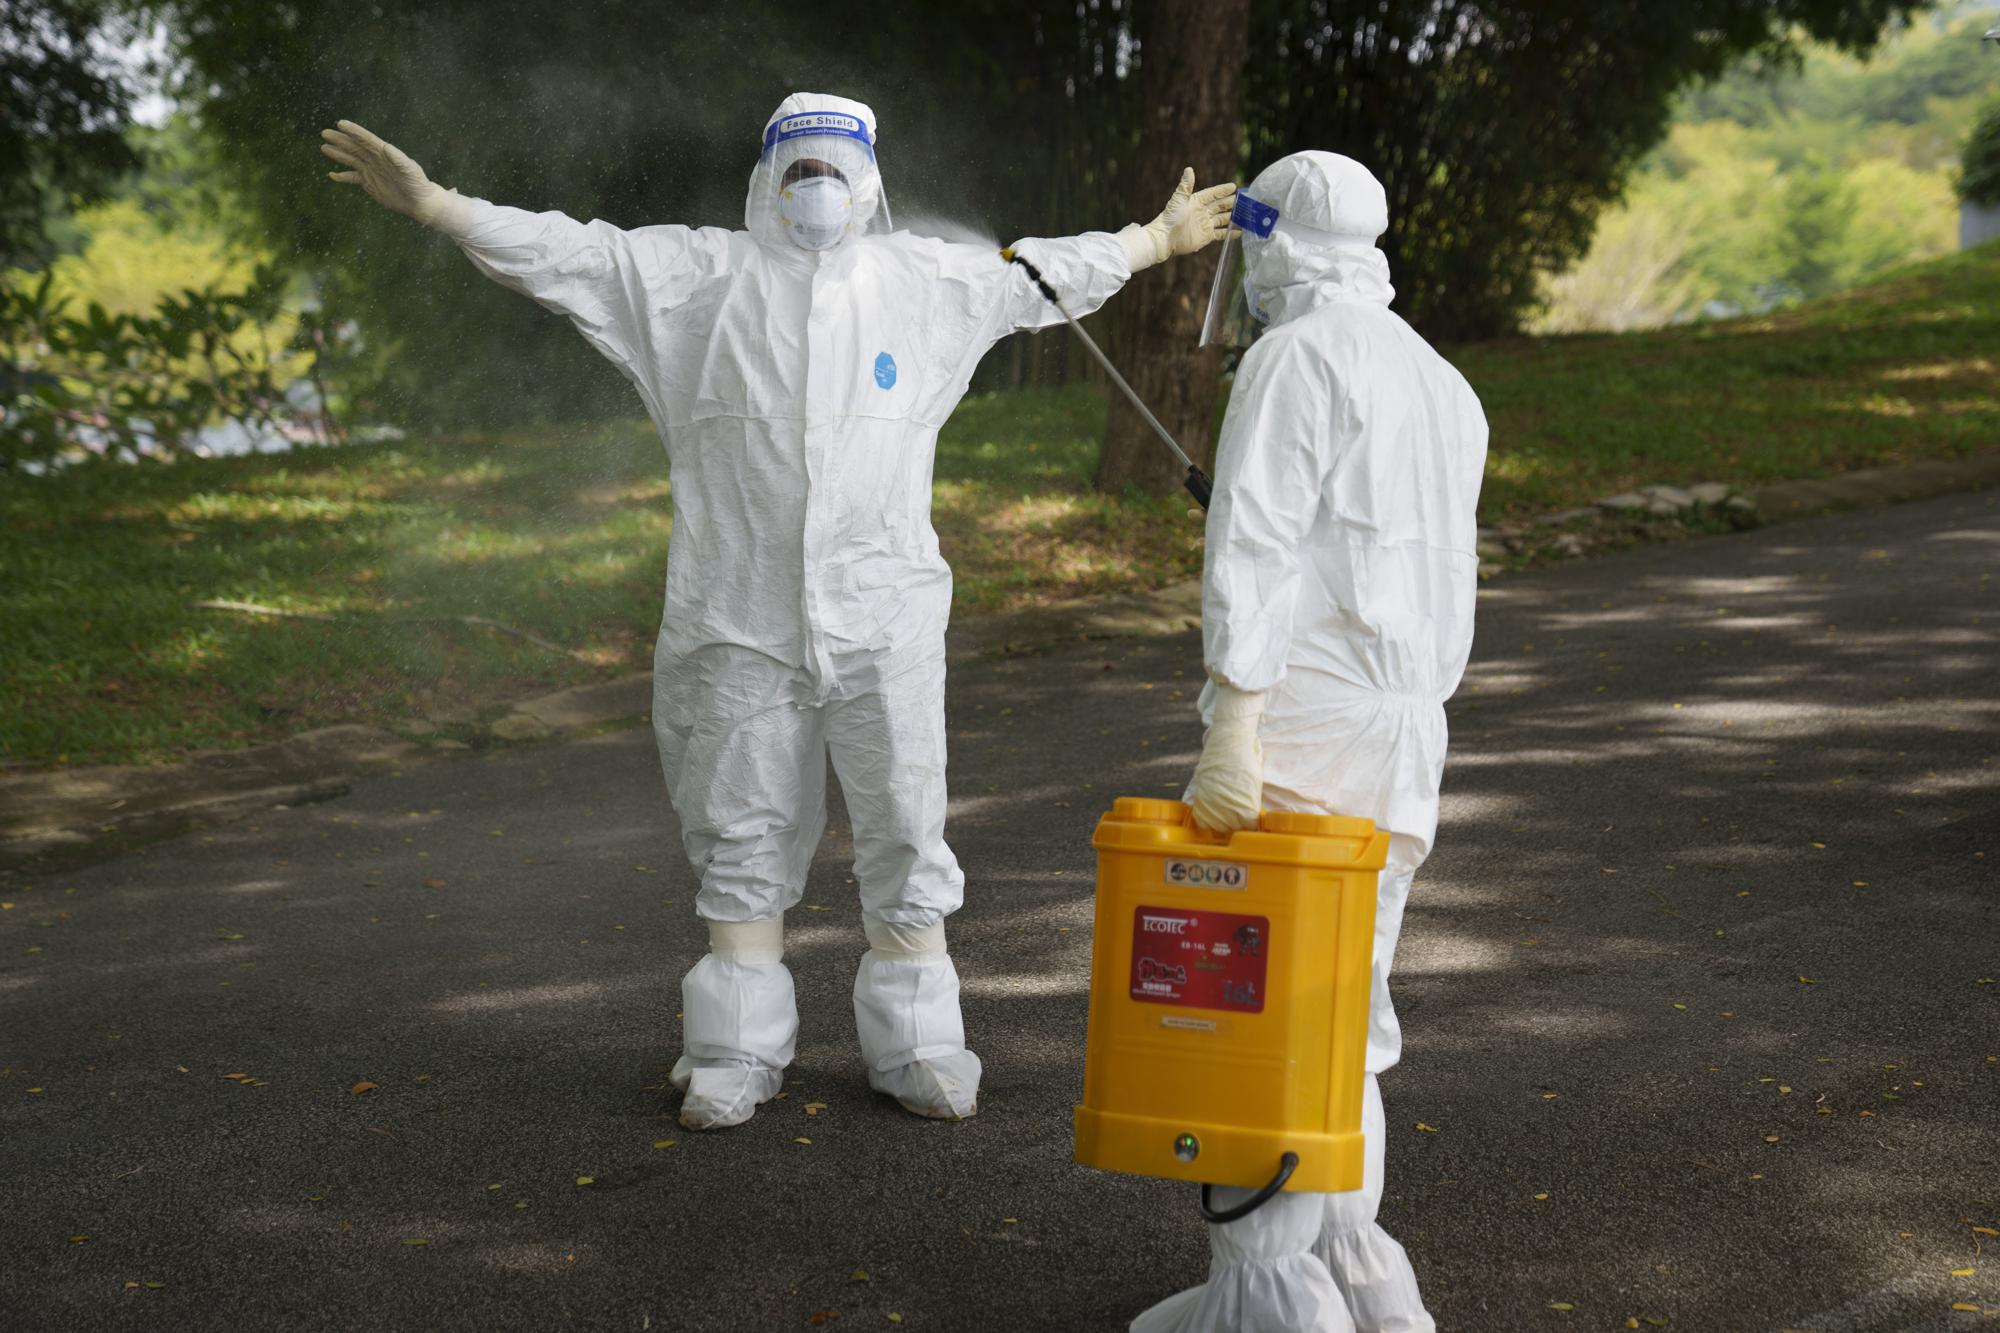 A health worker wearing Personal Protective Equipment (PPE) sanitises his colleague after the funeral for a COVID-19 victim at Nirvana memorial, a Buddhist, Taoist and Christian cemetery in Semenyih, Malaysia, Wednesday, May 26, 2021. Malaysia's latest coronavirus surge has been taking a turn for the worse as surging numbers and deaths have caused alarm among health officials, while cemeteries in the capital are dealing with an increasing number of deaths. (AP Photo/Vincent Thian)